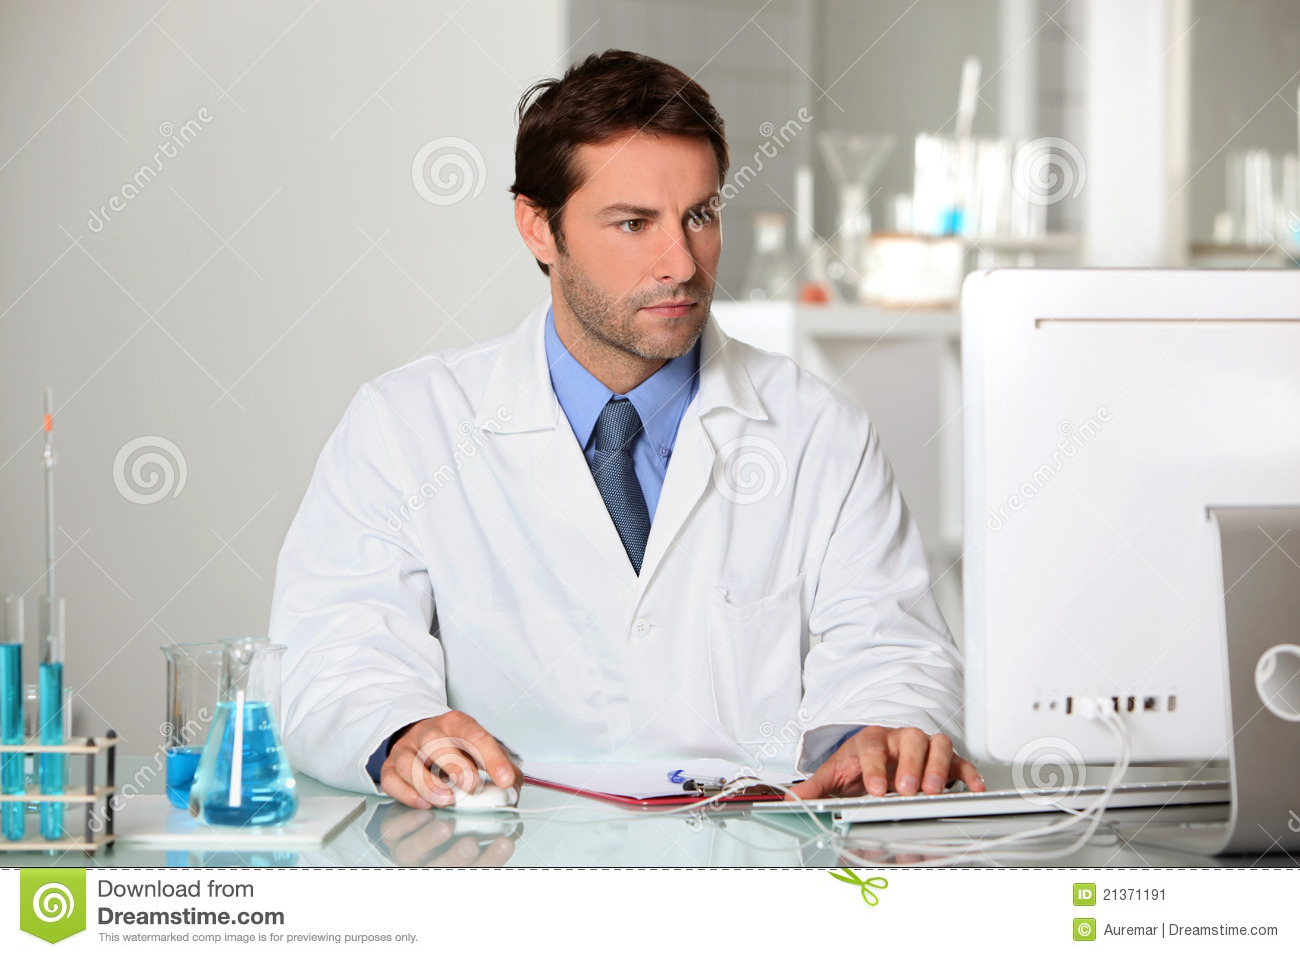 lab technician studying results on a computer stock image - image, Human Body